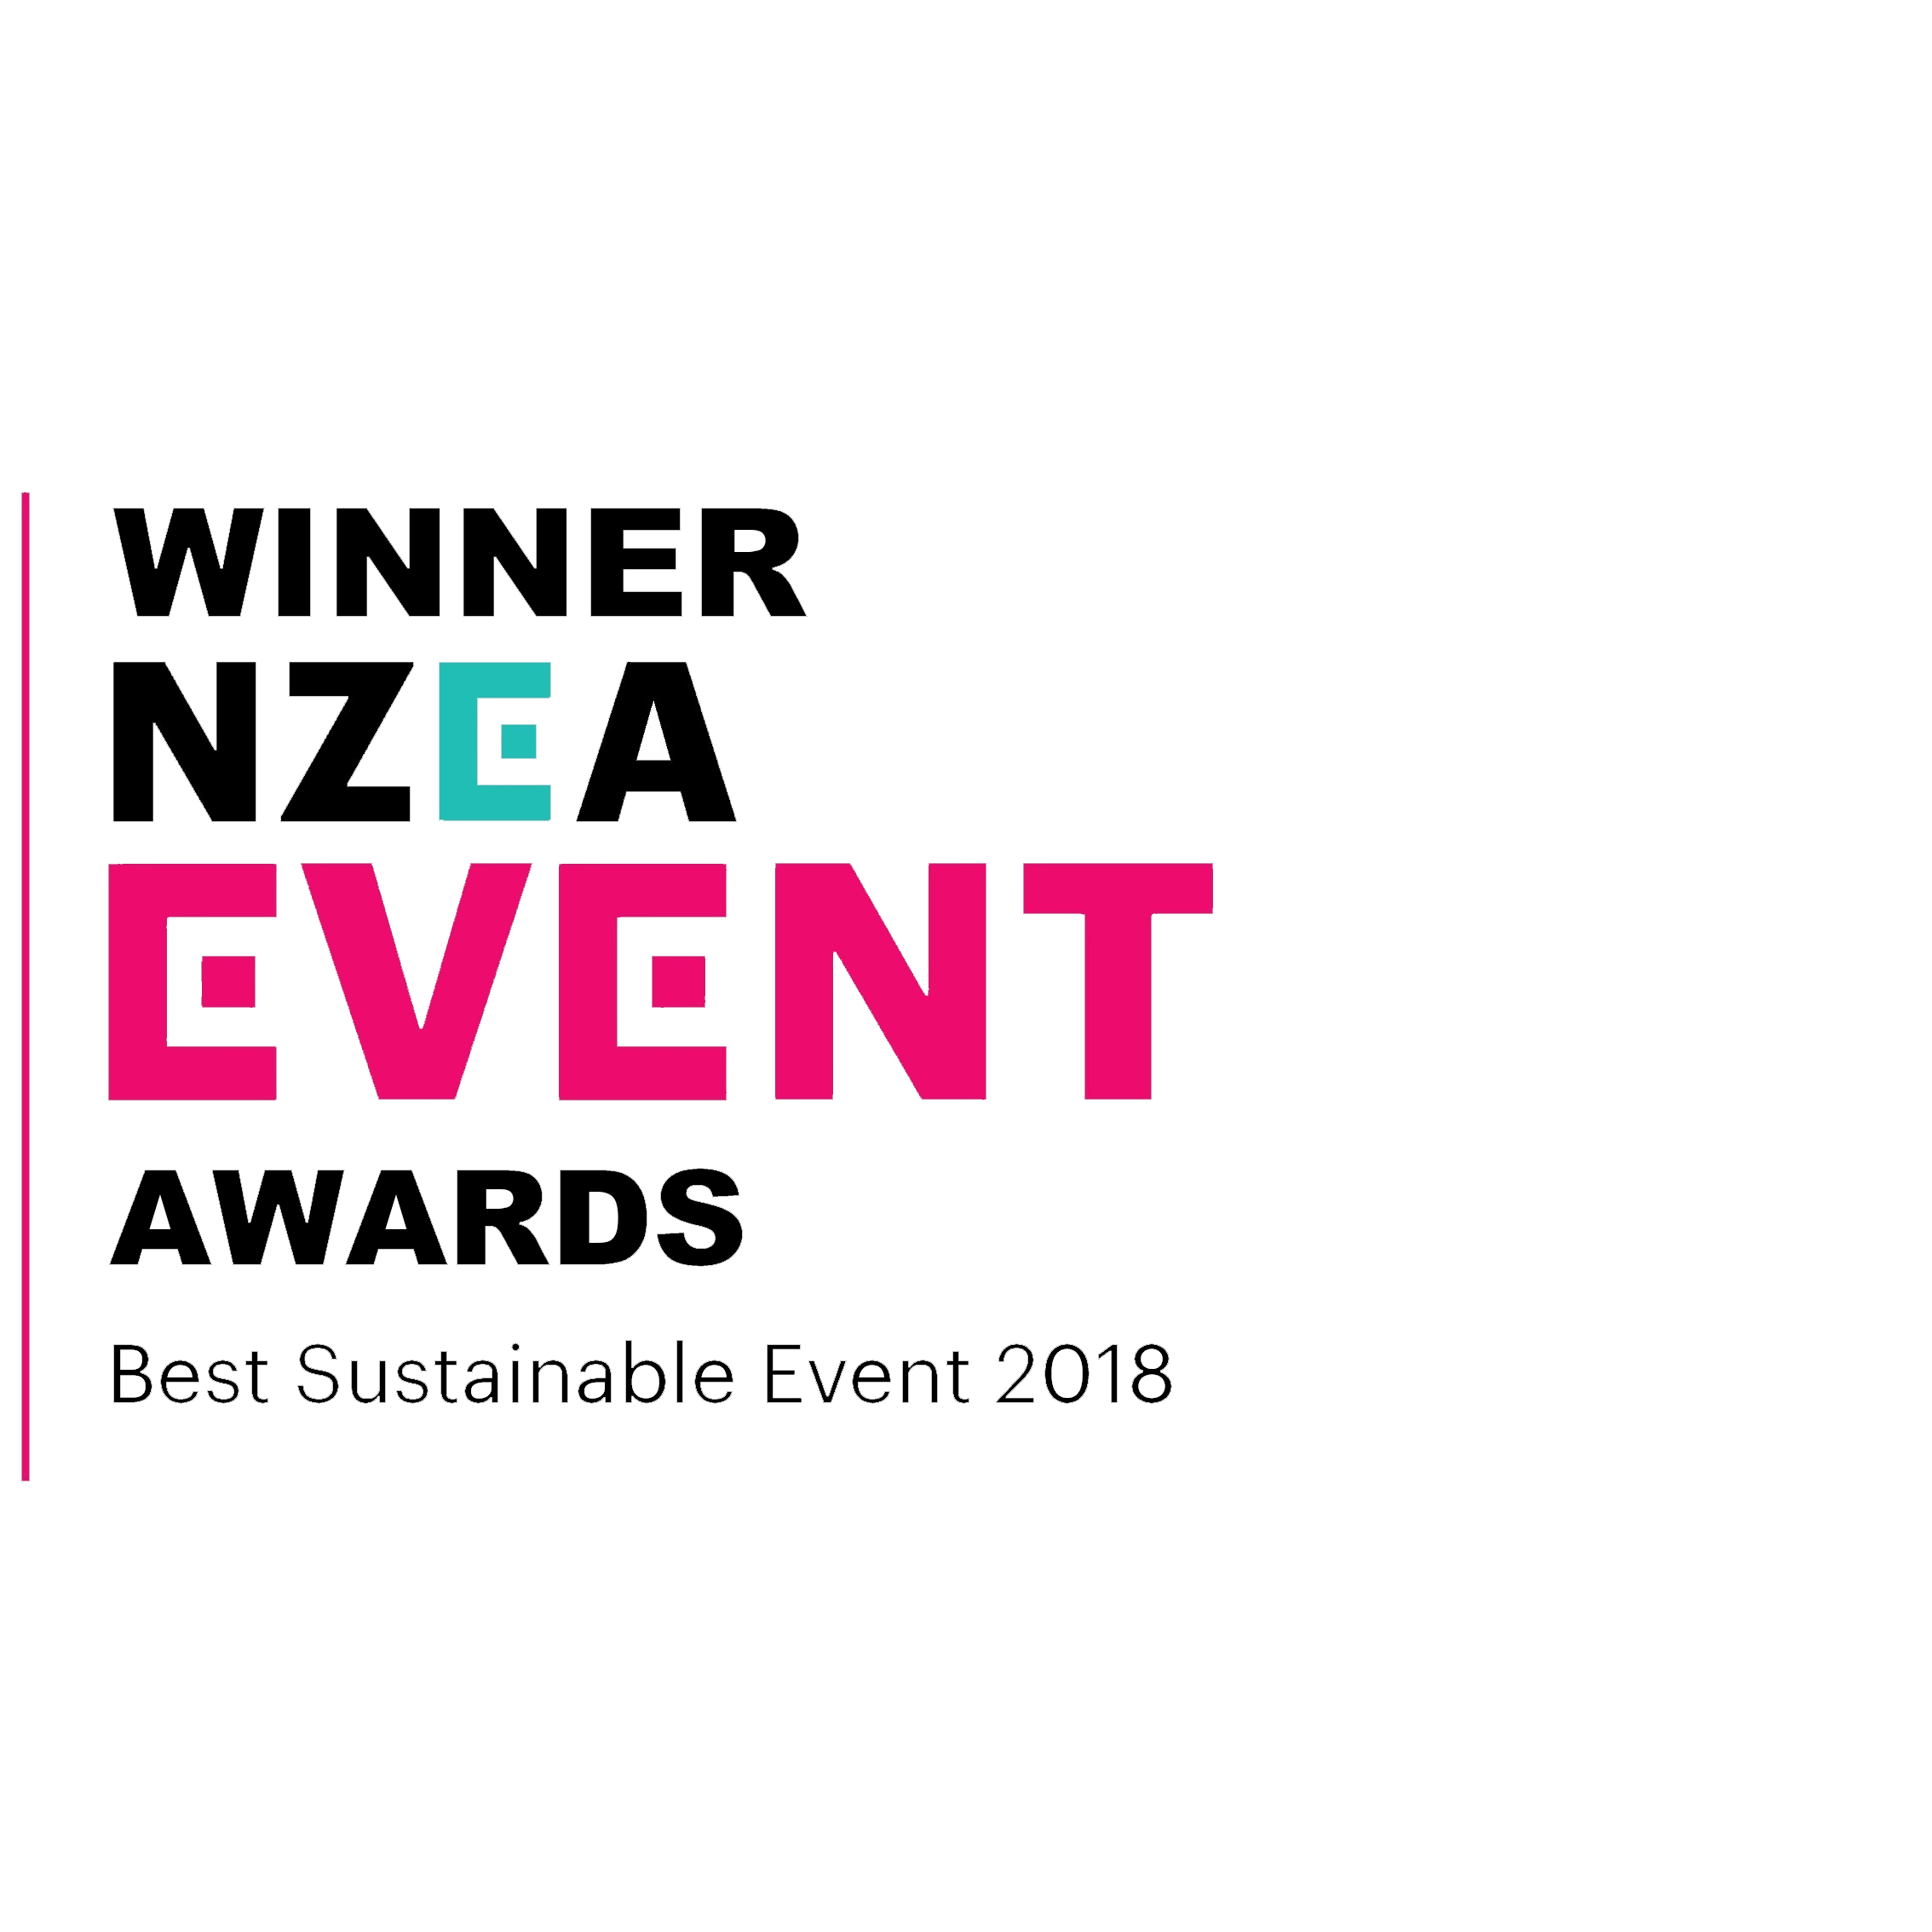 NZEA Event Awards-Signatures-Winner- Best Sustainable Event 2018.png